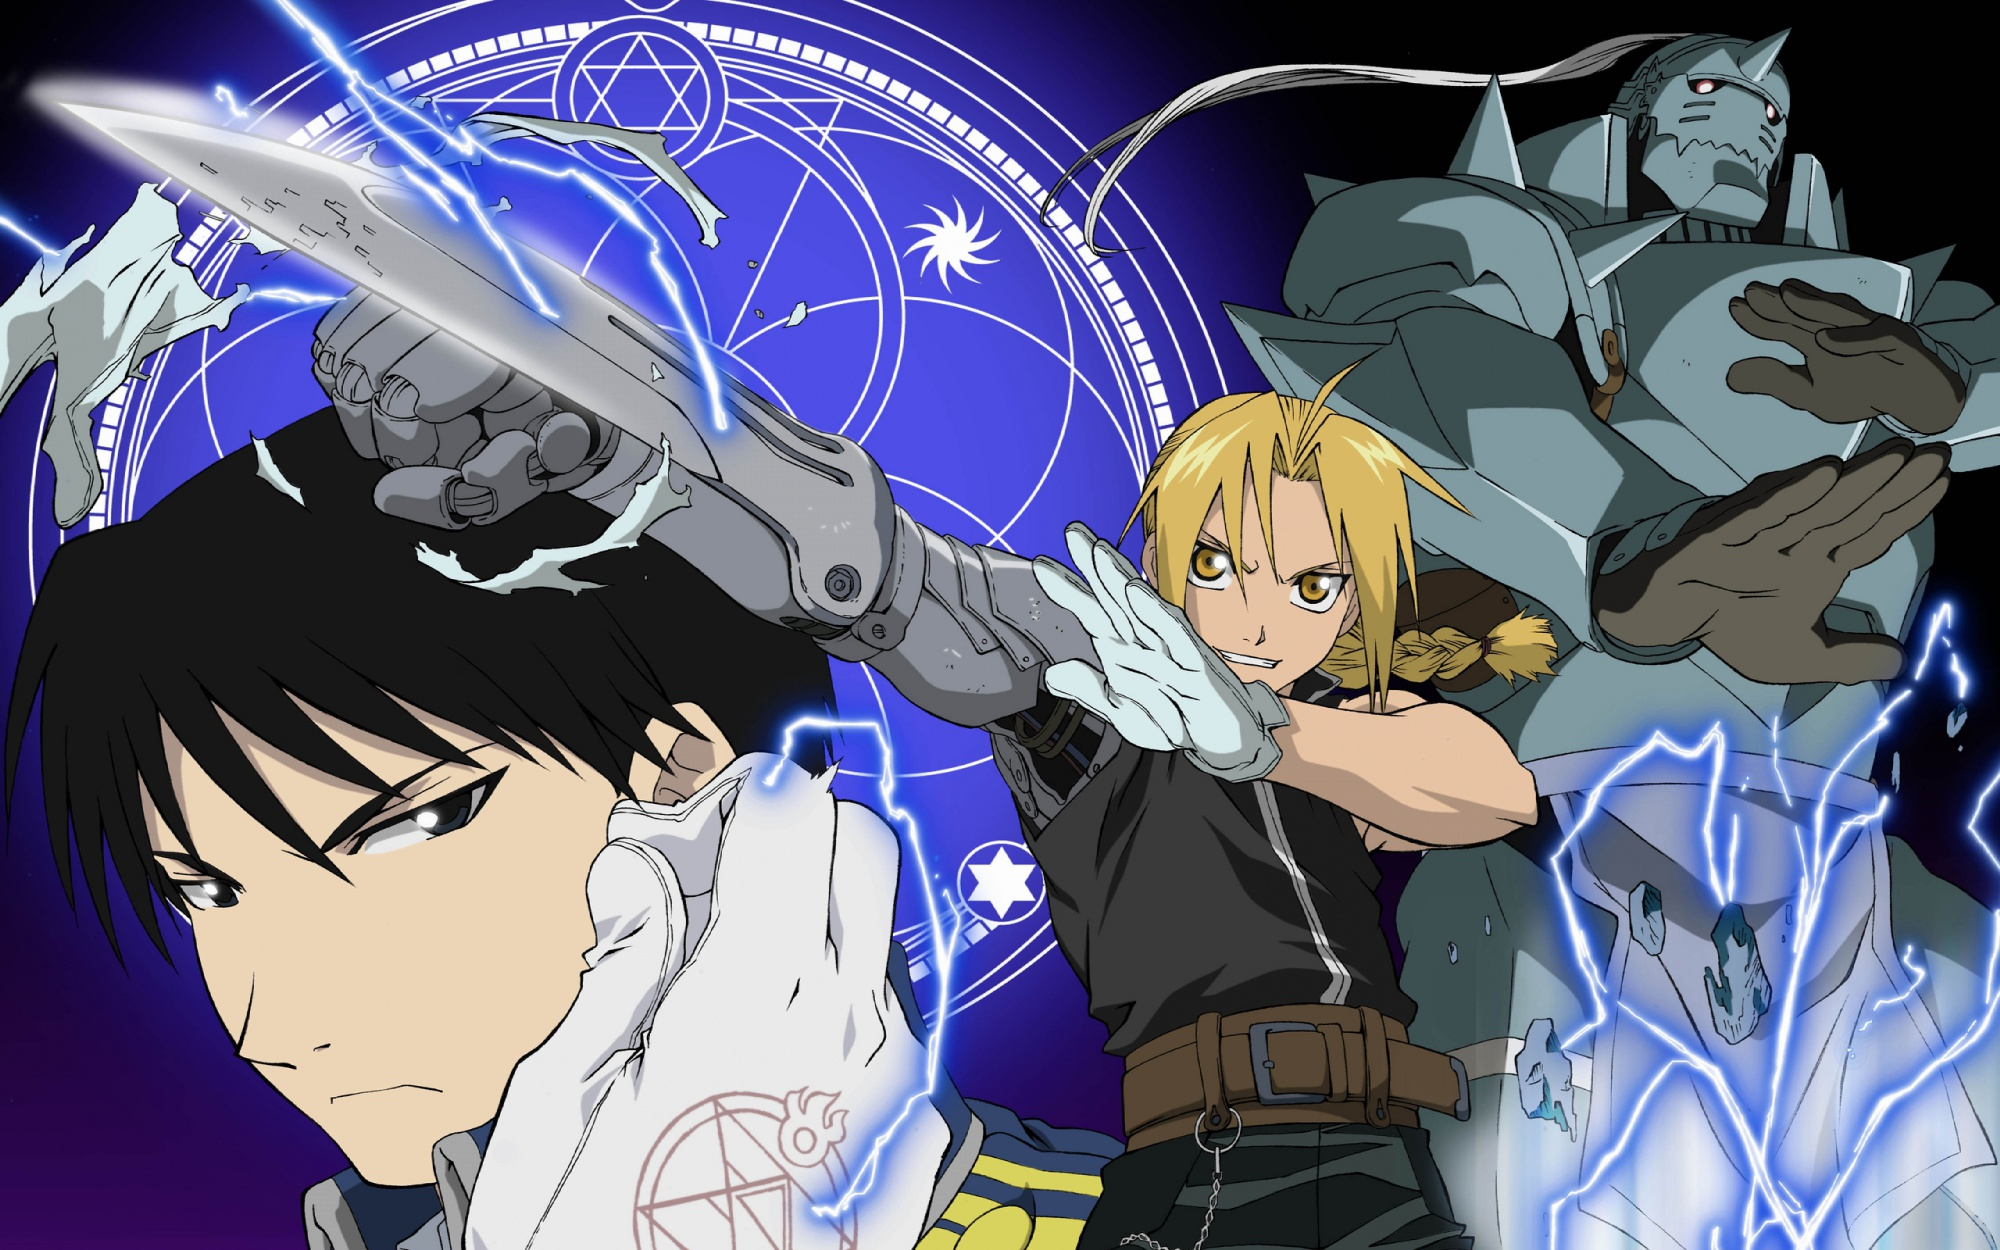 Fullmetal Alchemist Hd Wallpaper 568480 Zerochan Anime Image Board